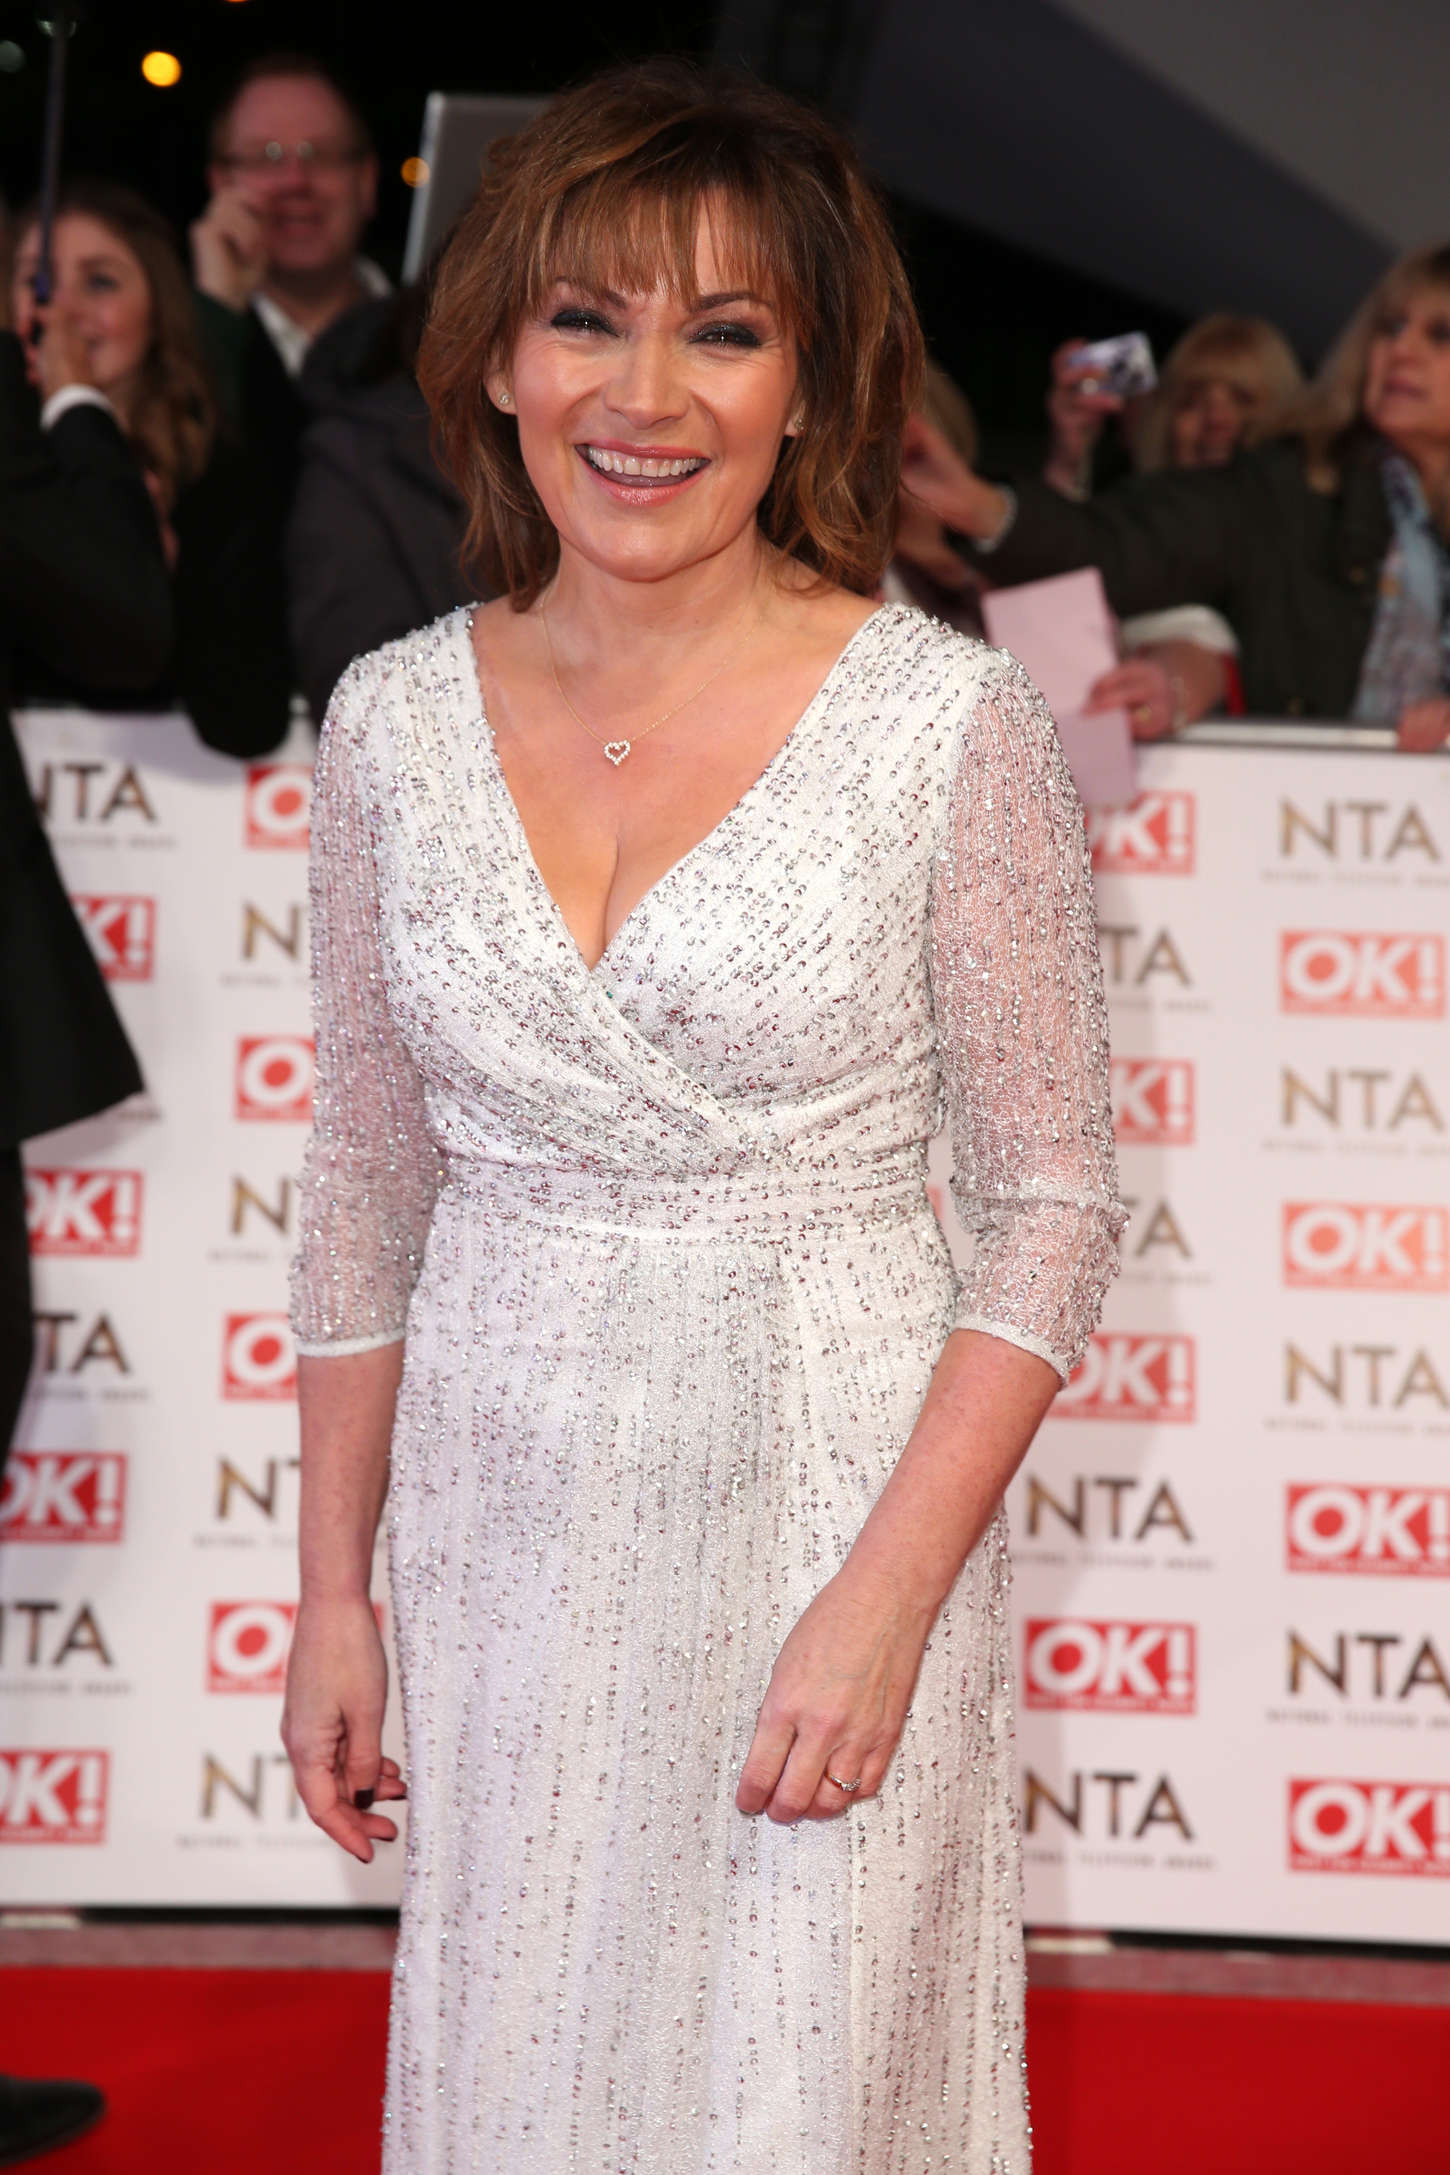 Lorraine Kelly National Television Awards in London